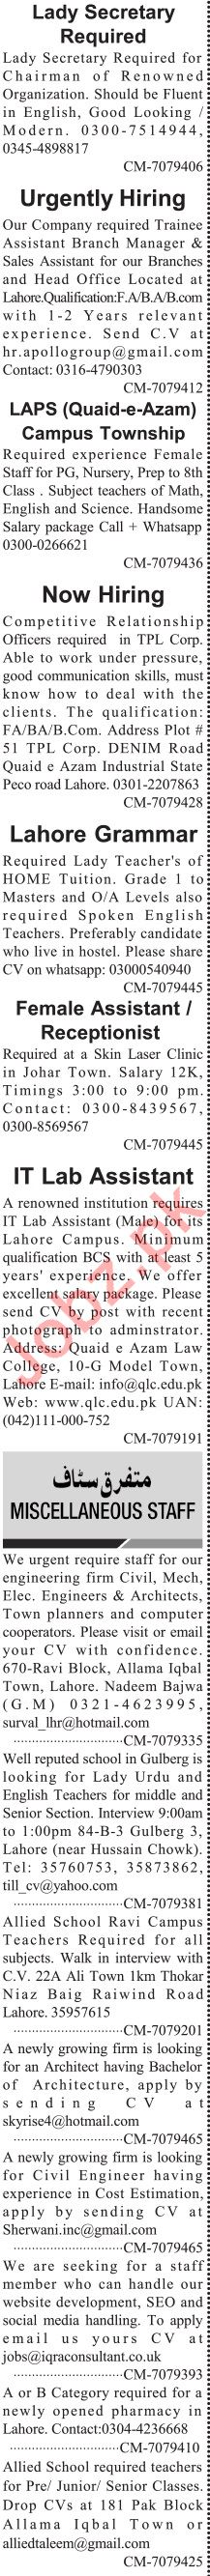 Jang Sunday Classified Ads 9 Feb 2020 for Management Staff